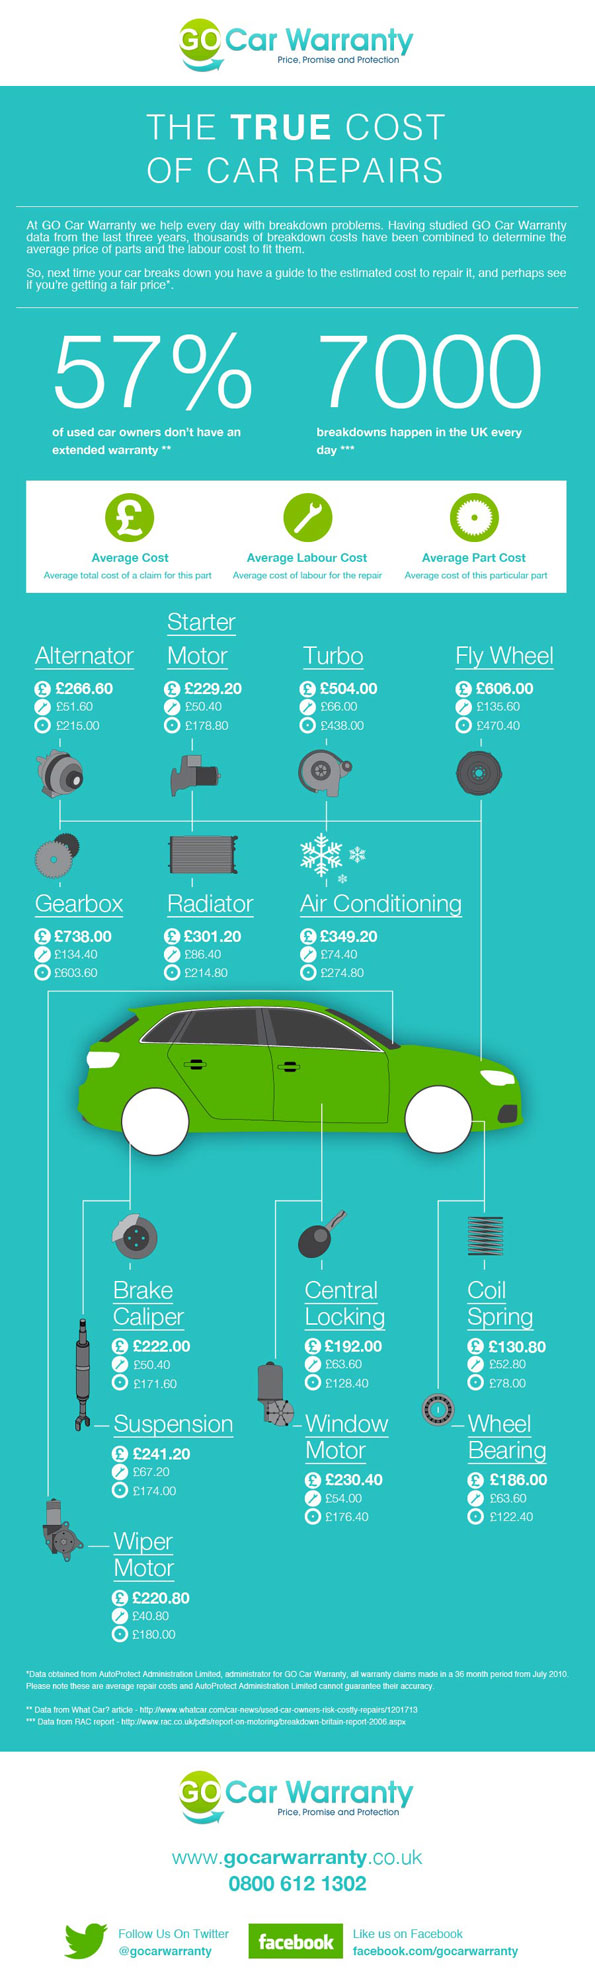 The true cost of car repairs - infographic image